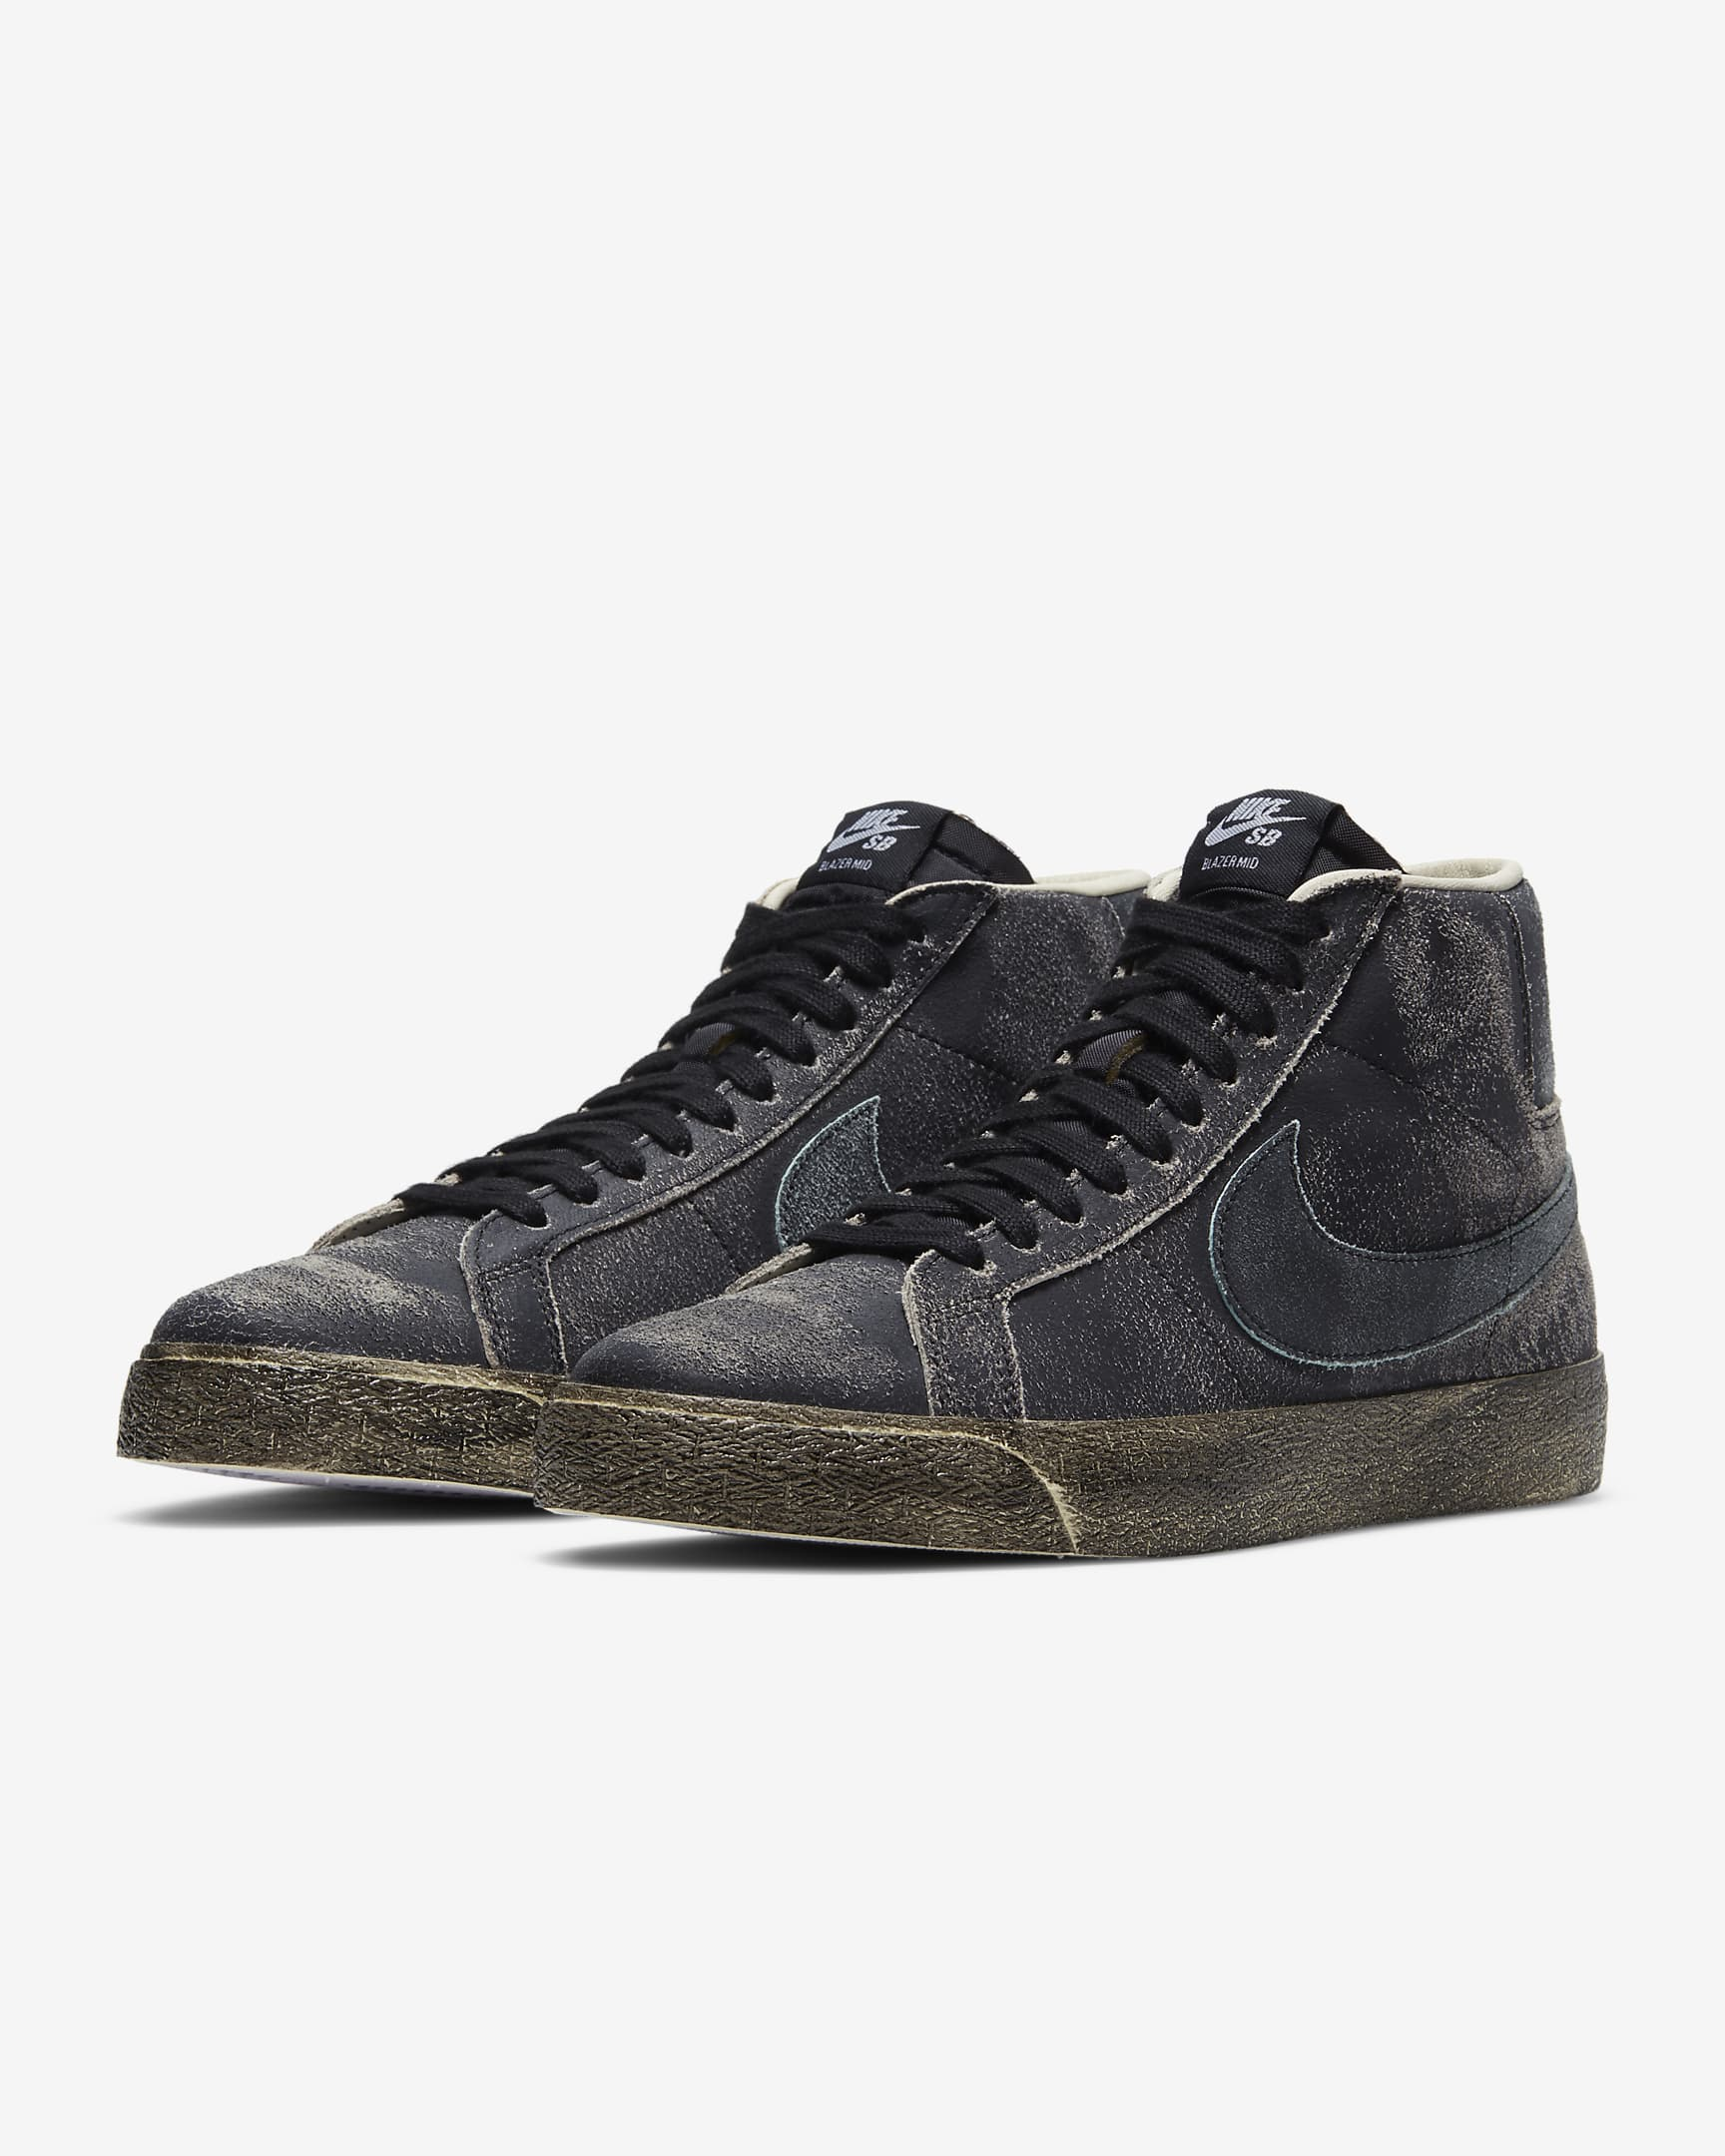 BLAZER MID PREMIUM BLACK / LIGHT DEW - COCONUT MILK